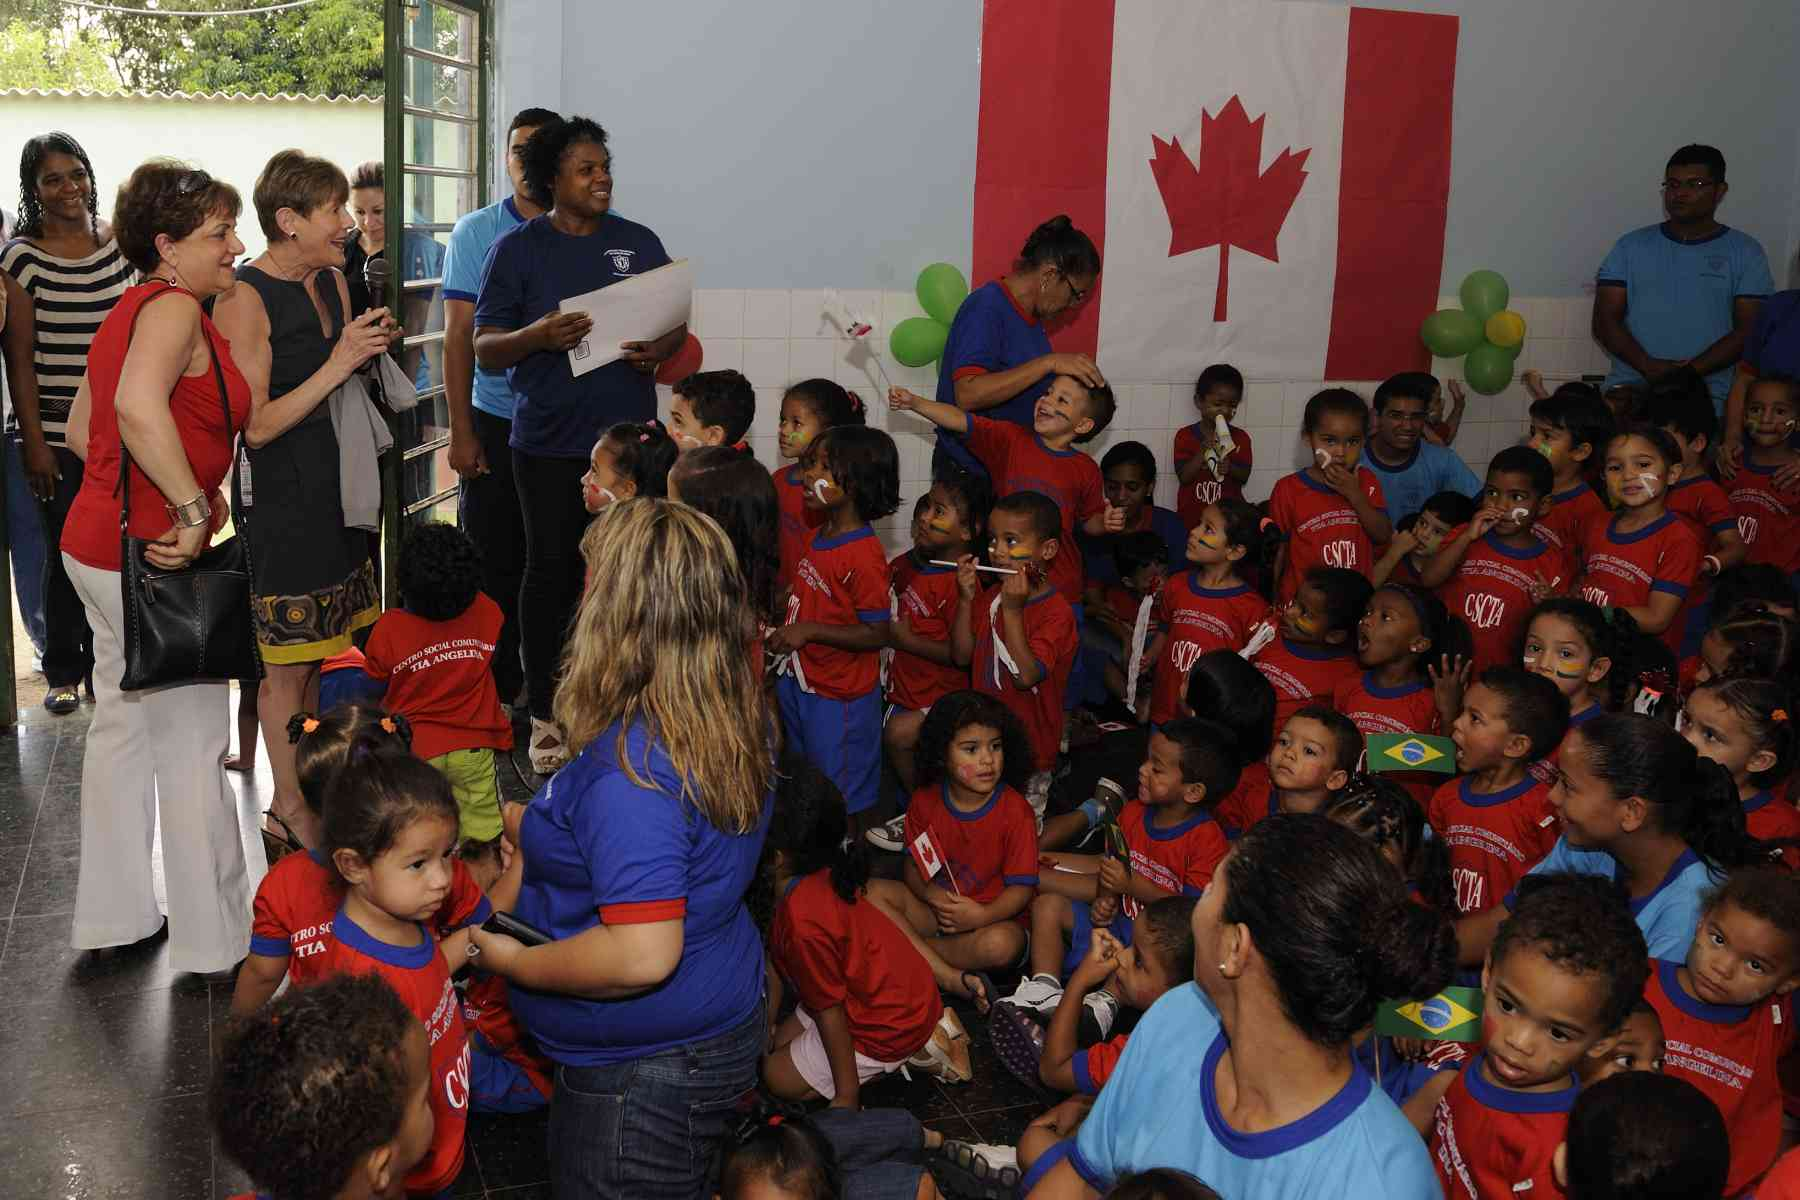 Supported in part by the Canada Fund for Local Initiatives, the Tia Angelina Institution provides the local community with preschool care for 250 children through an agreement with the local government education authorities of the Federal District of Brasília.